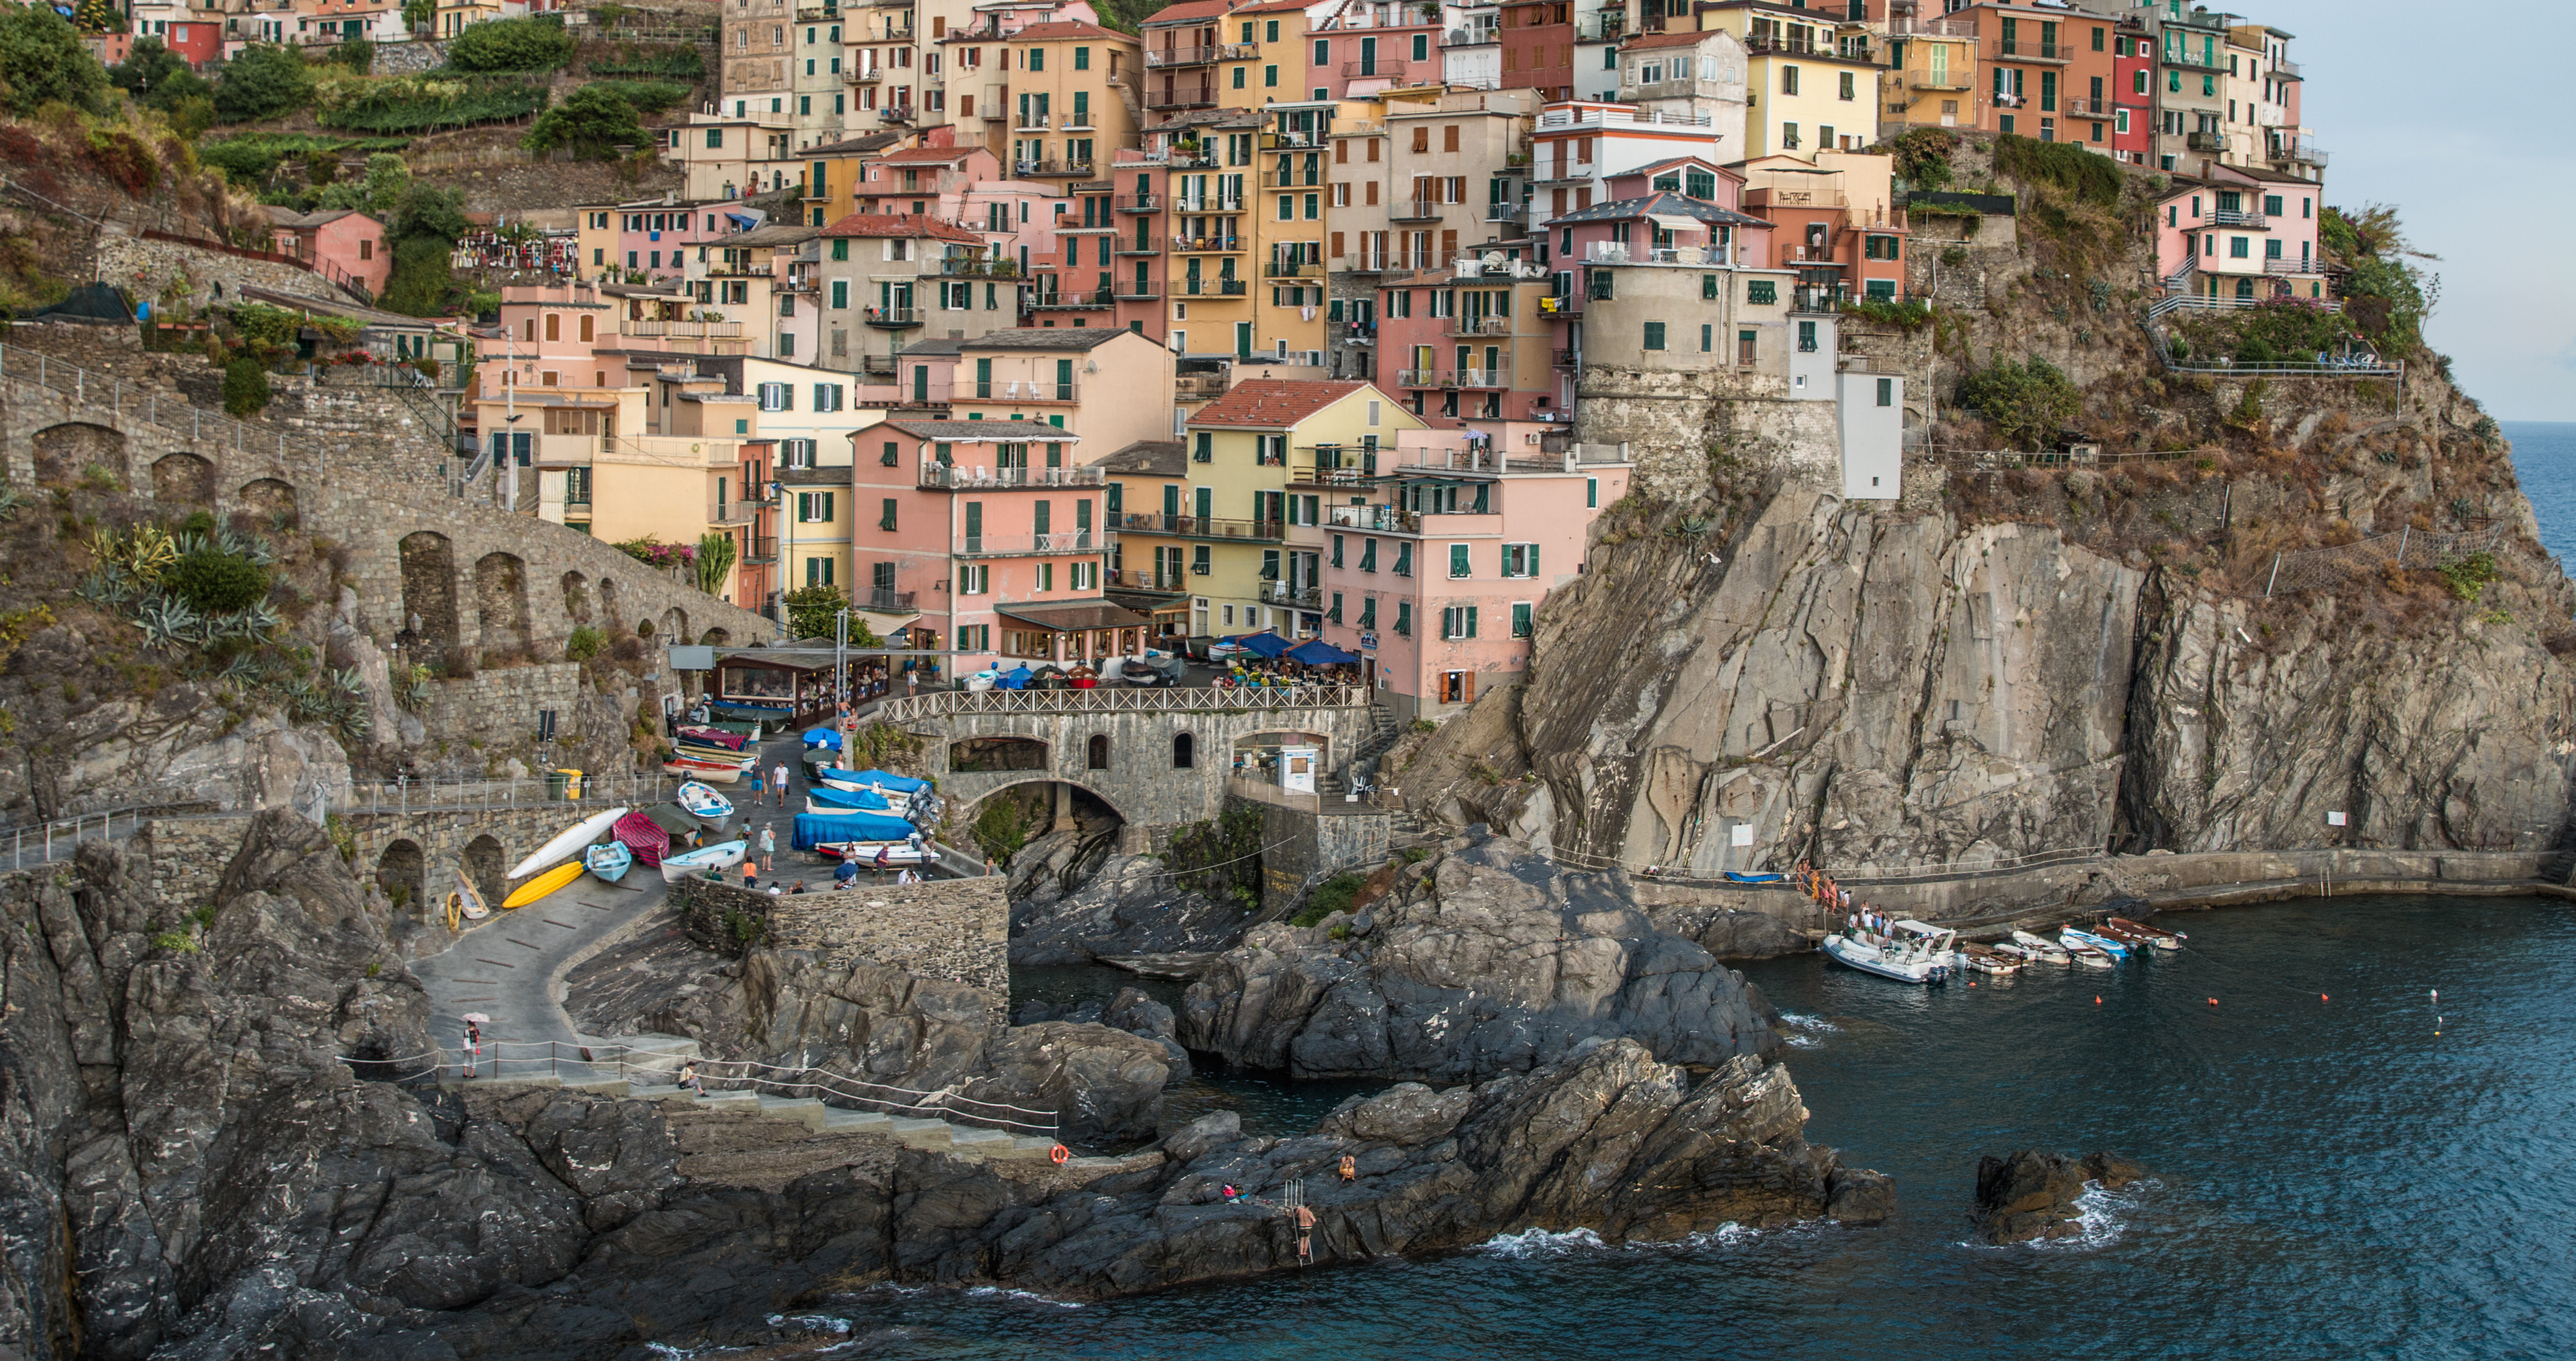 Where To Eat In Cinque Terre, Italy